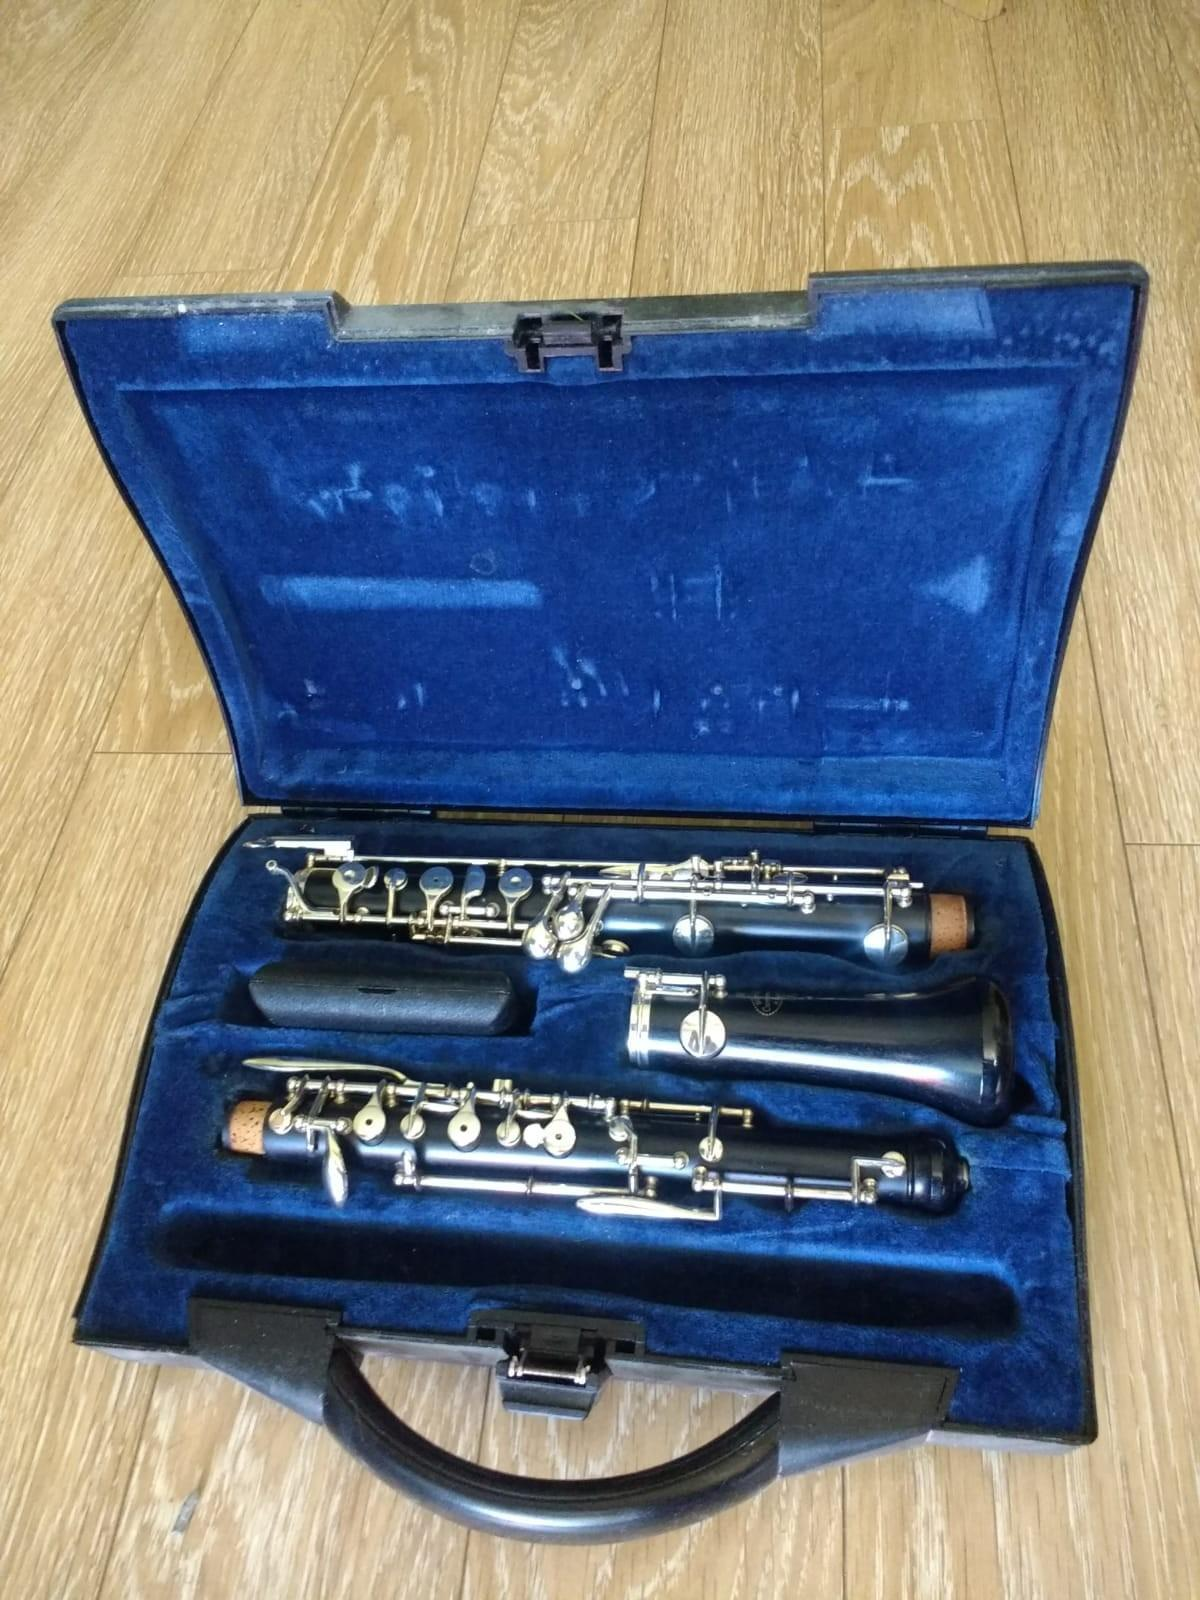 Marvelous Oboe Buffet Crampon Cie Paris 13105 Vgc In Sy13 Whitchurch Download Free Architecture Designs Scobabritishbridgeorg